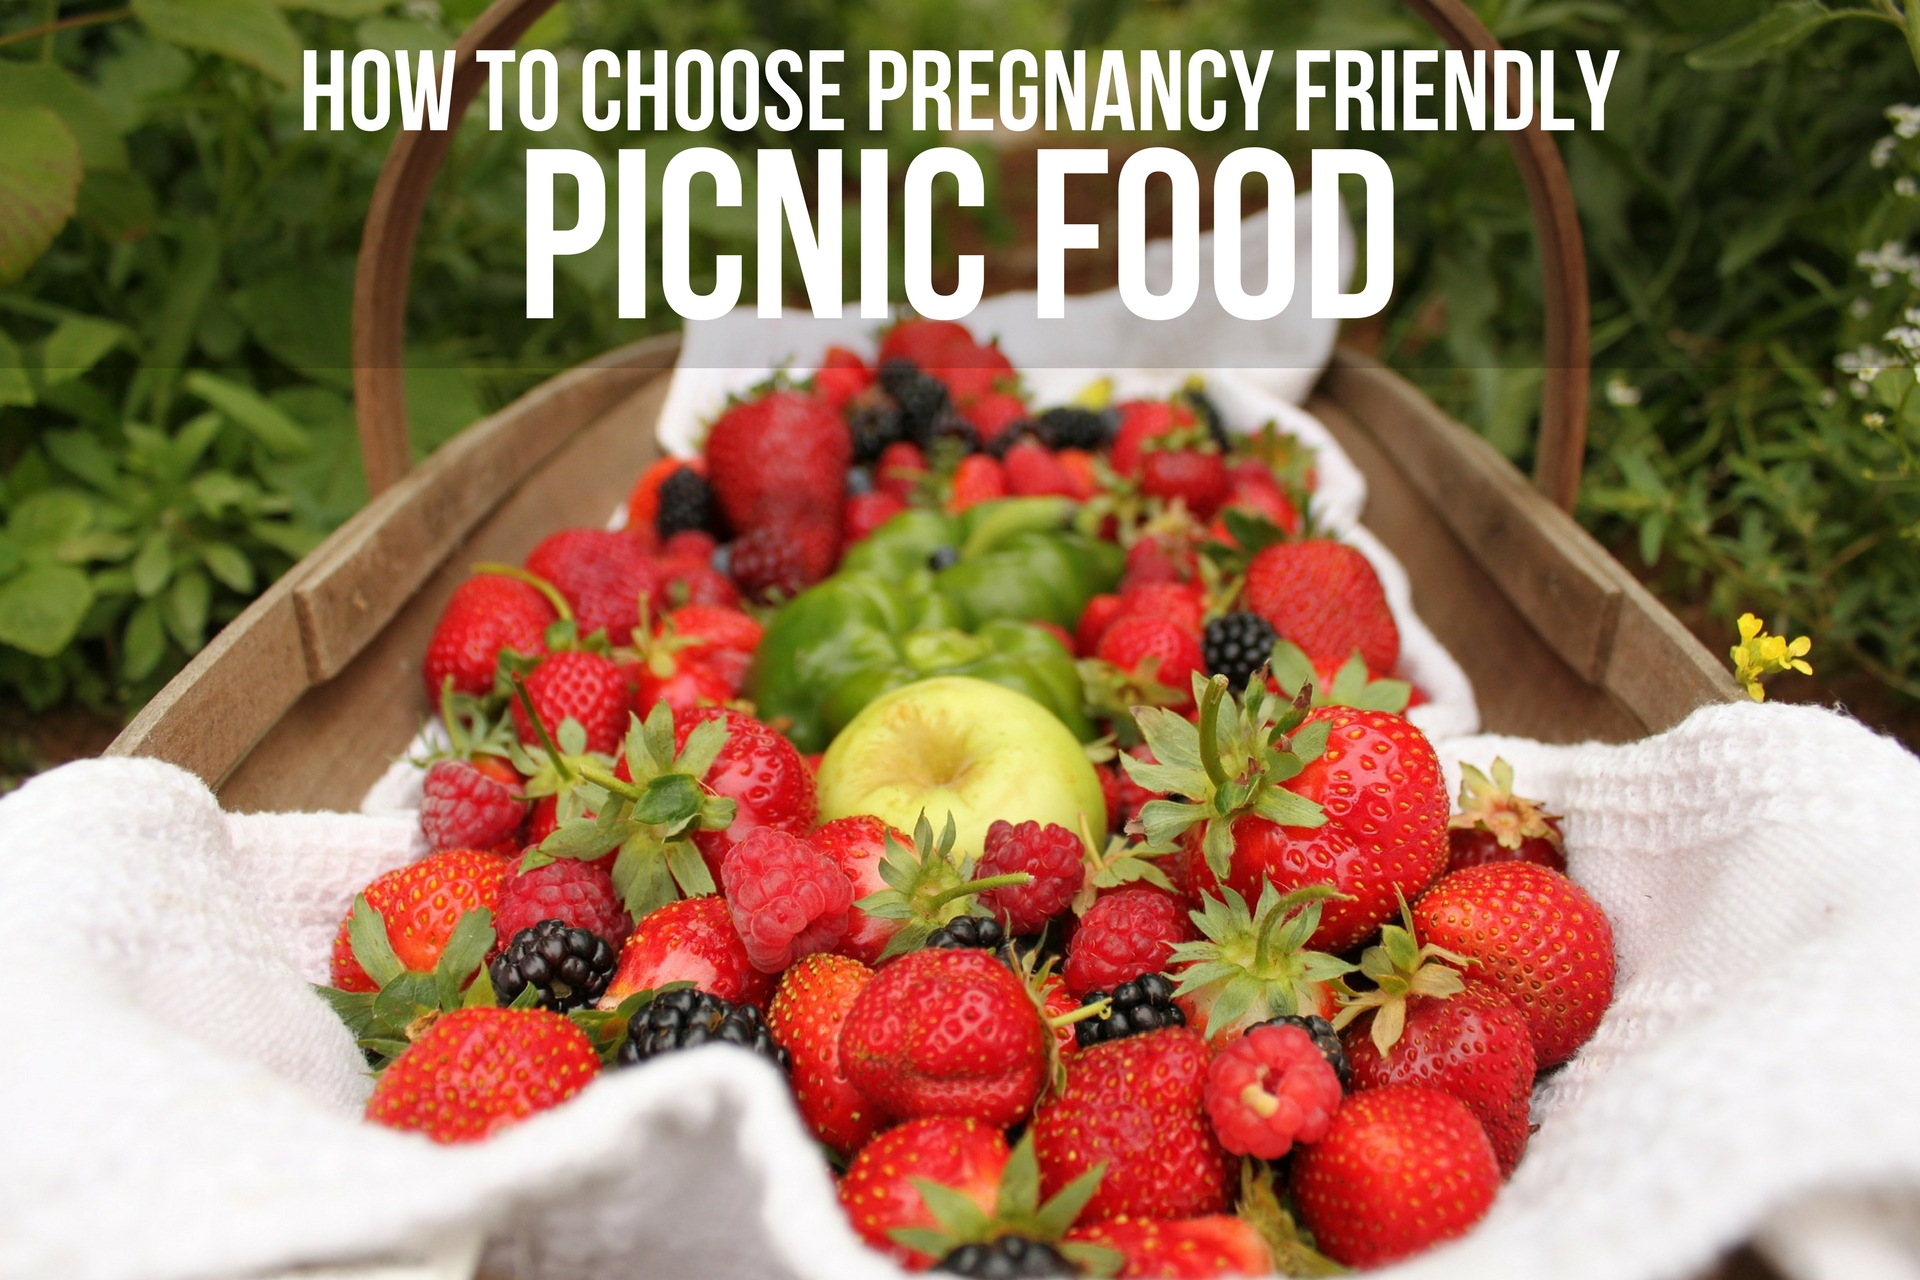 HOW TO CHOOSE PREGNANCY FRIENDLY PICNIC FOOD